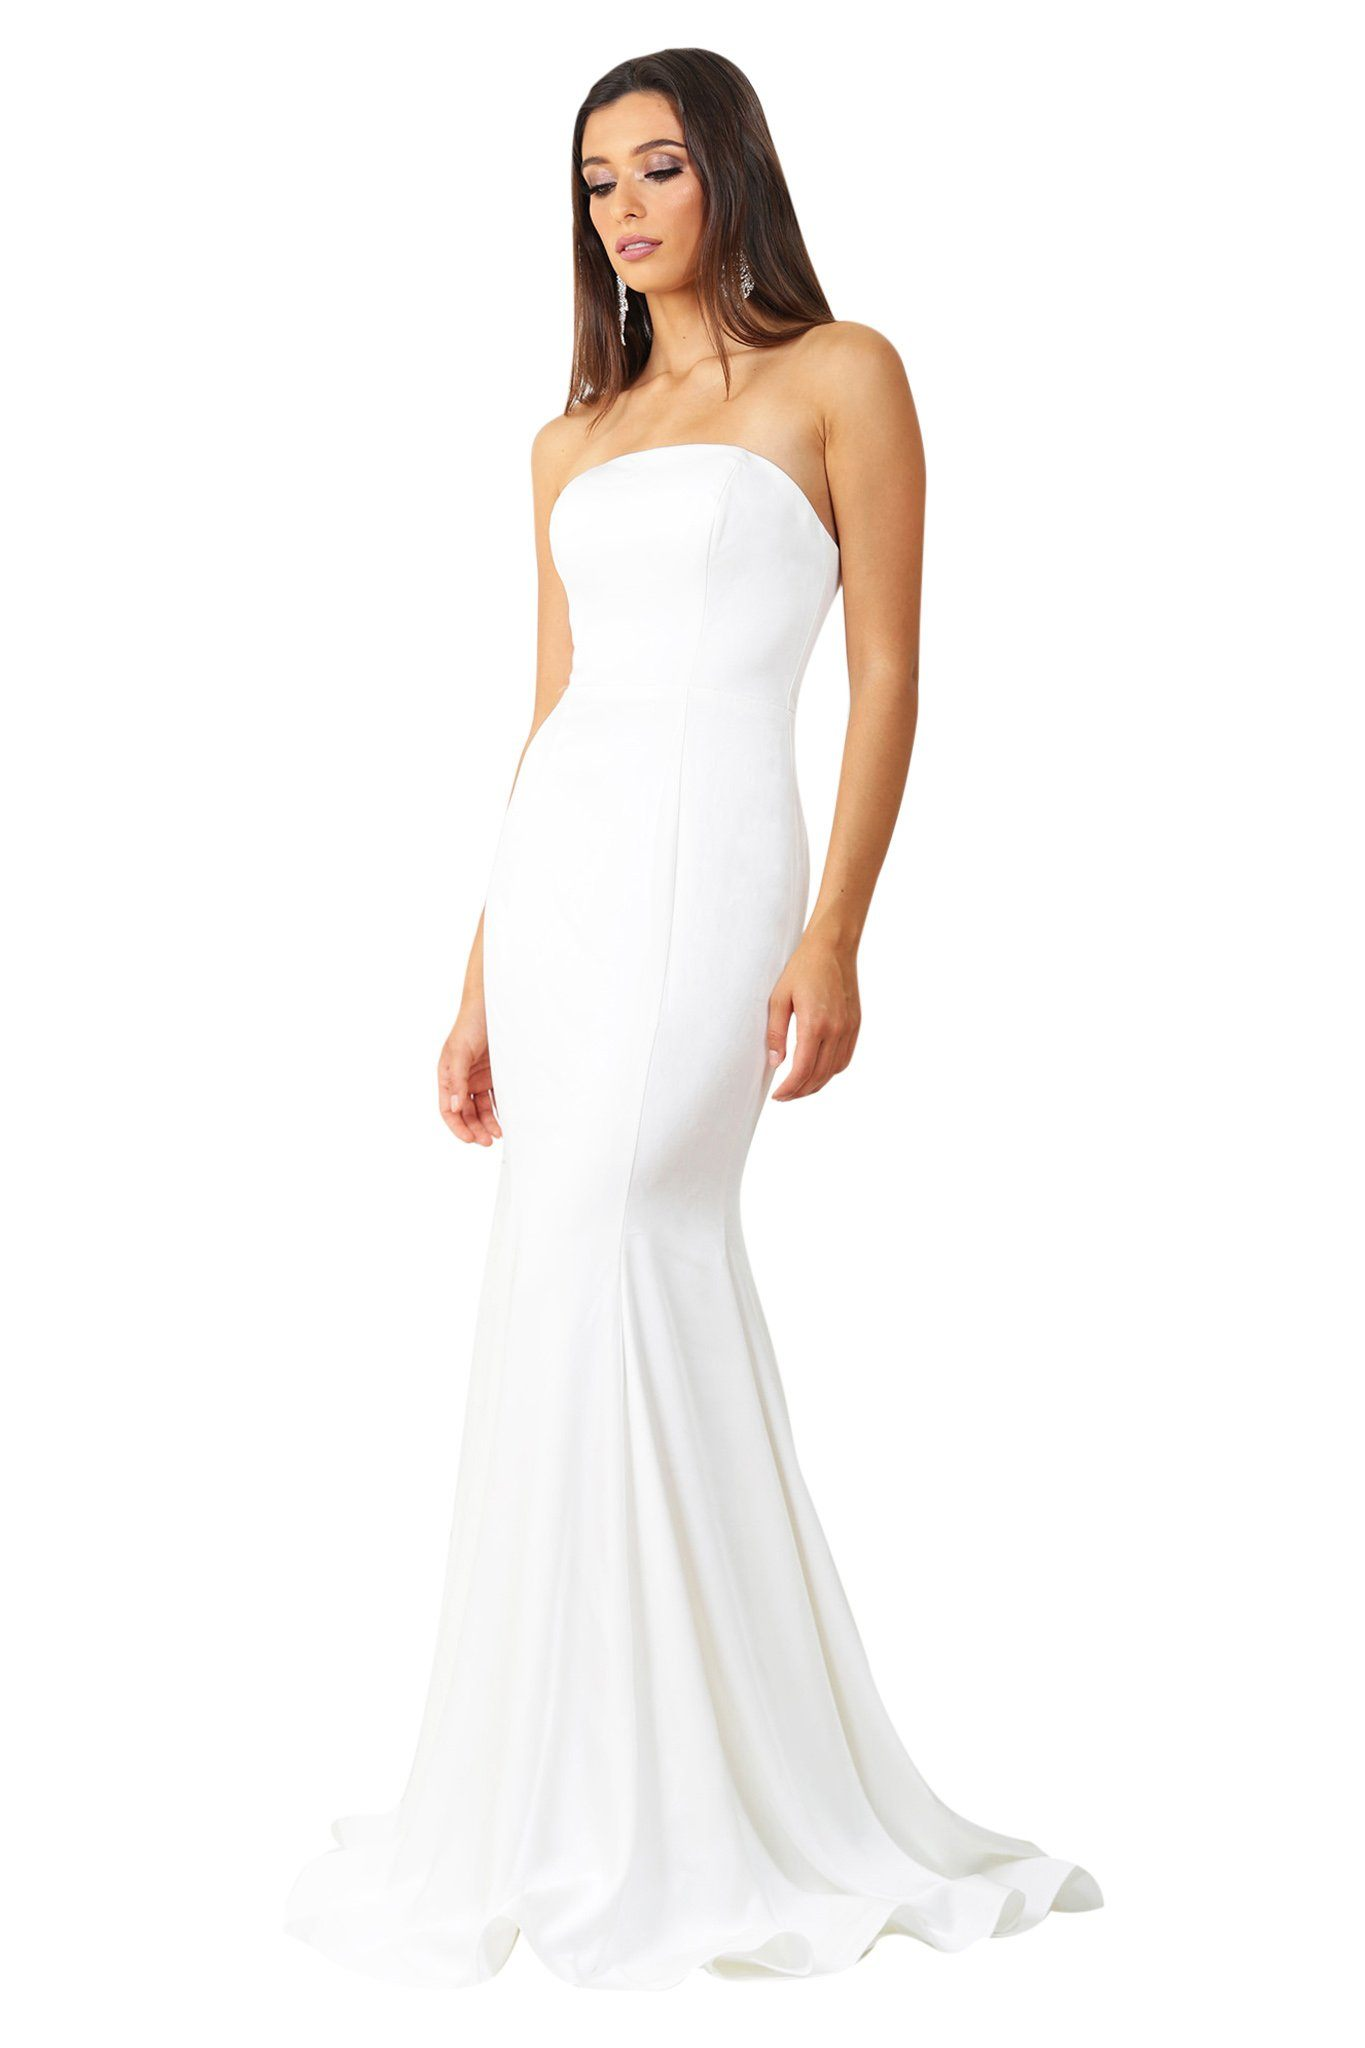 8bda208c90aa9 White strapless straight neckline boned bodice fitted evening gown with  floor sweeping train